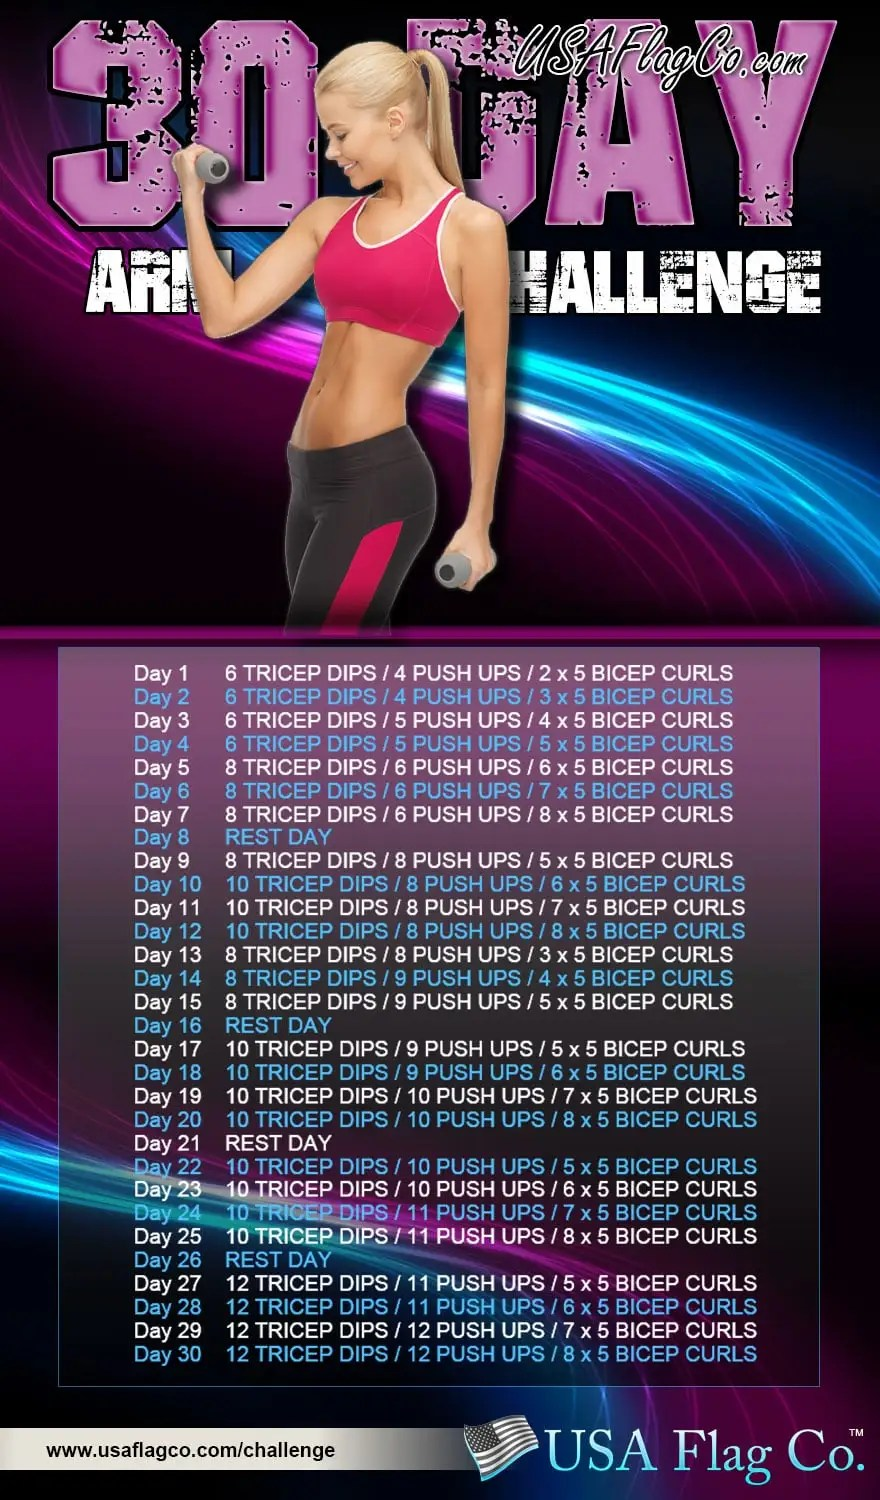 30-Day Arm Challenge from USA Flag Co. | Bicep & Tricep Blaster - Three different groups of exercises make up the 30-day arm challenge workout. Each exercise targets the biceps and two exercises that targets the triceps.